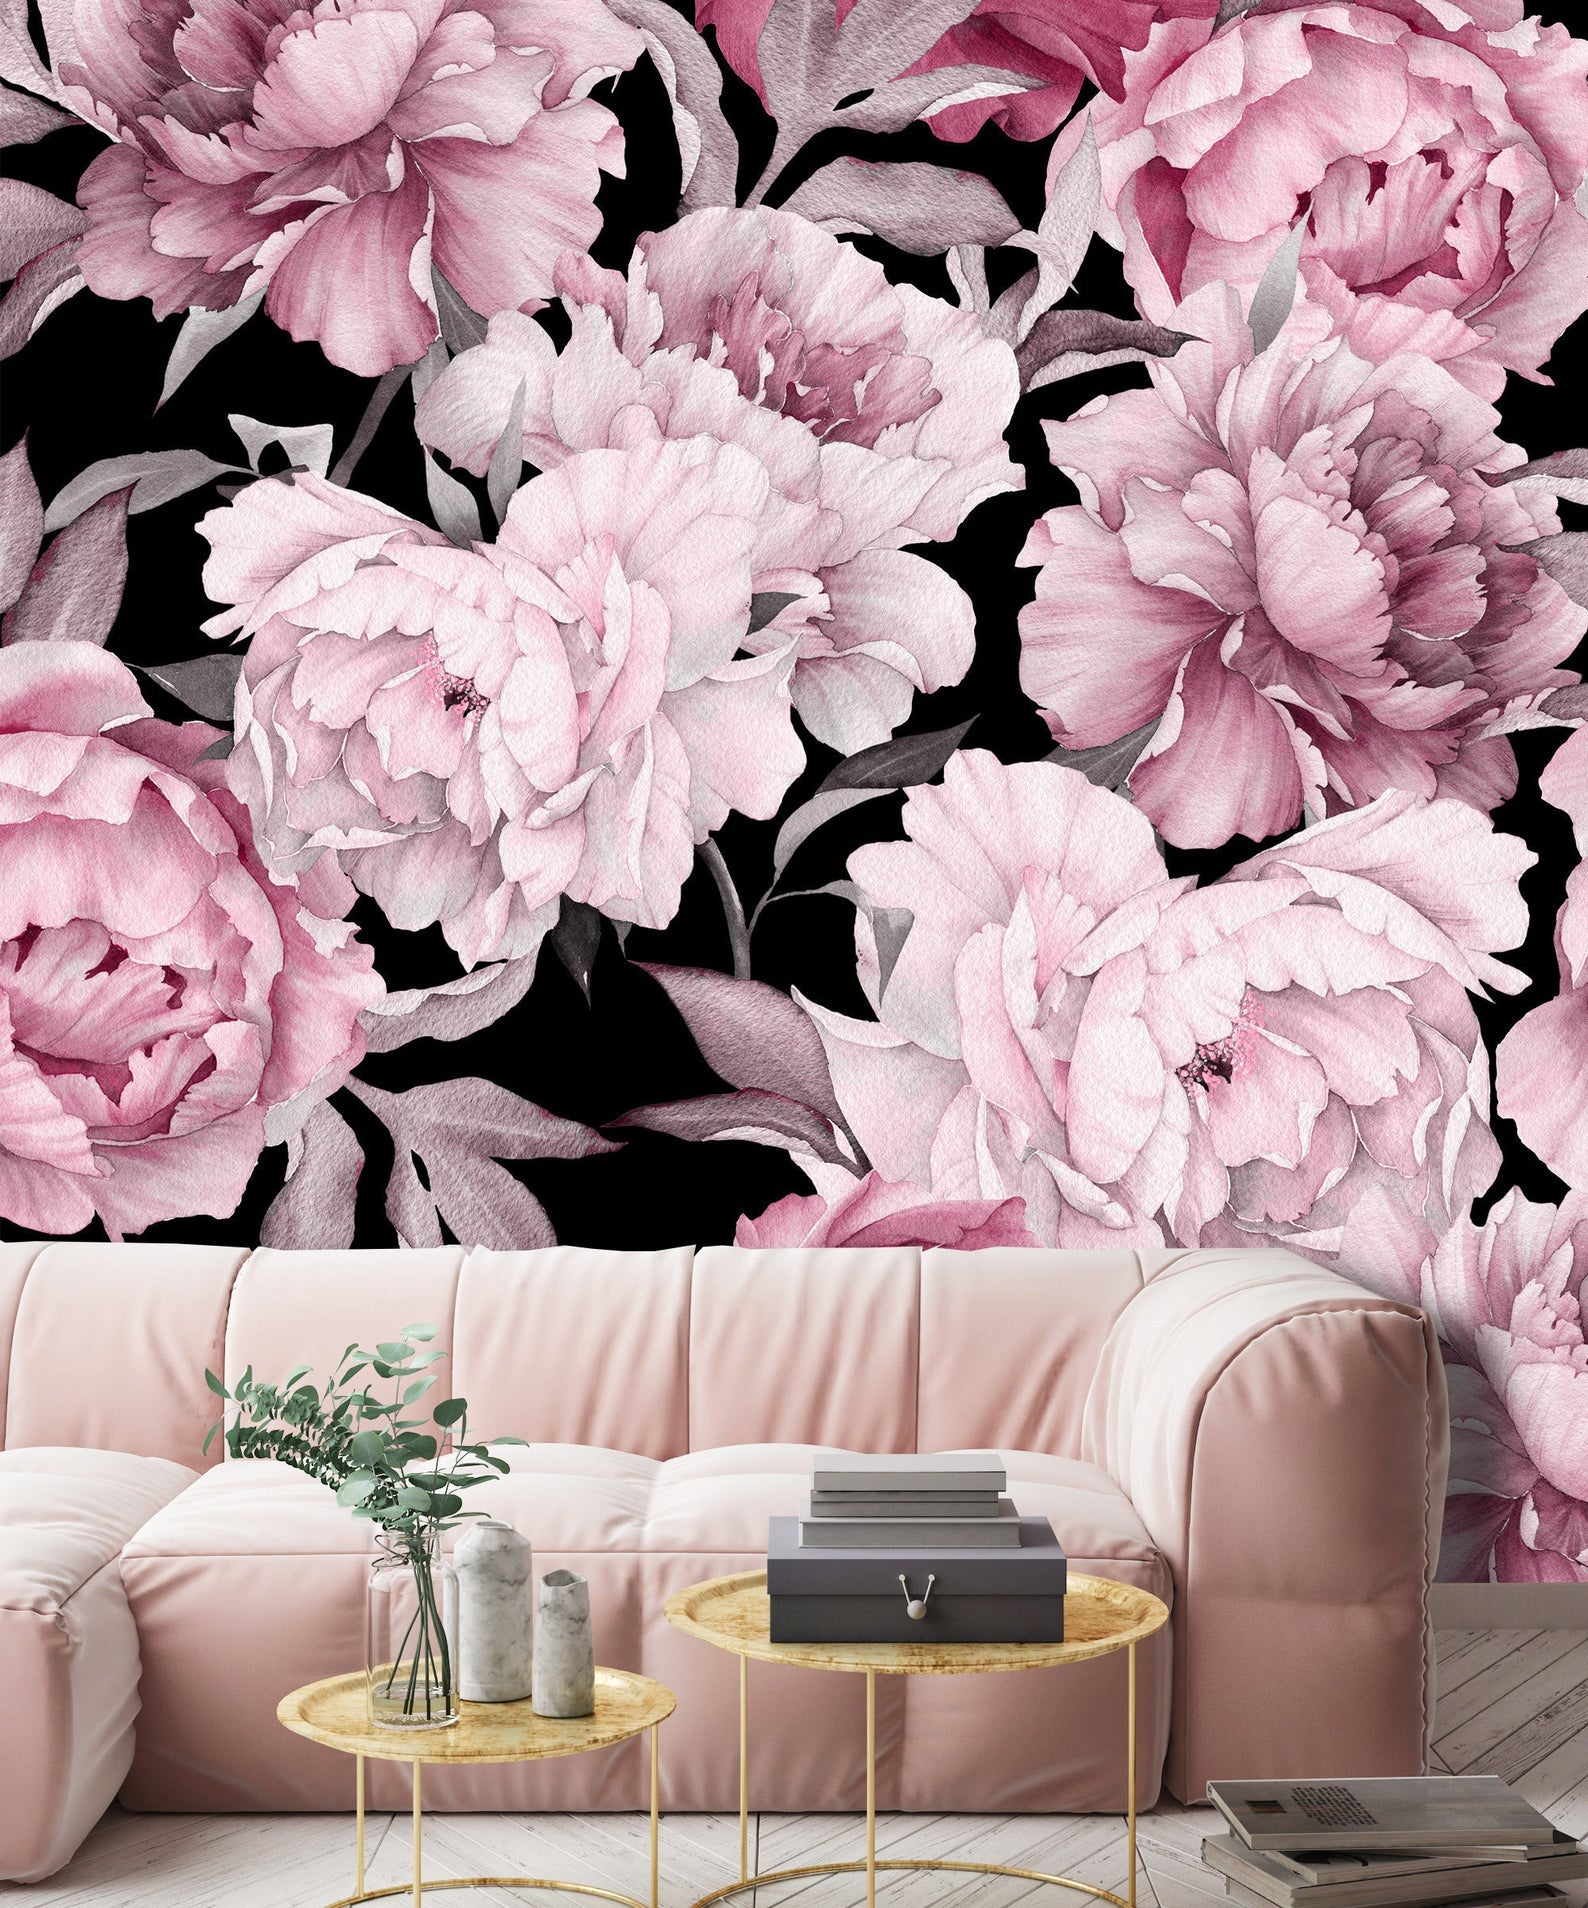 Pink Peonies Flowers with Leaves Removable Wallpaper